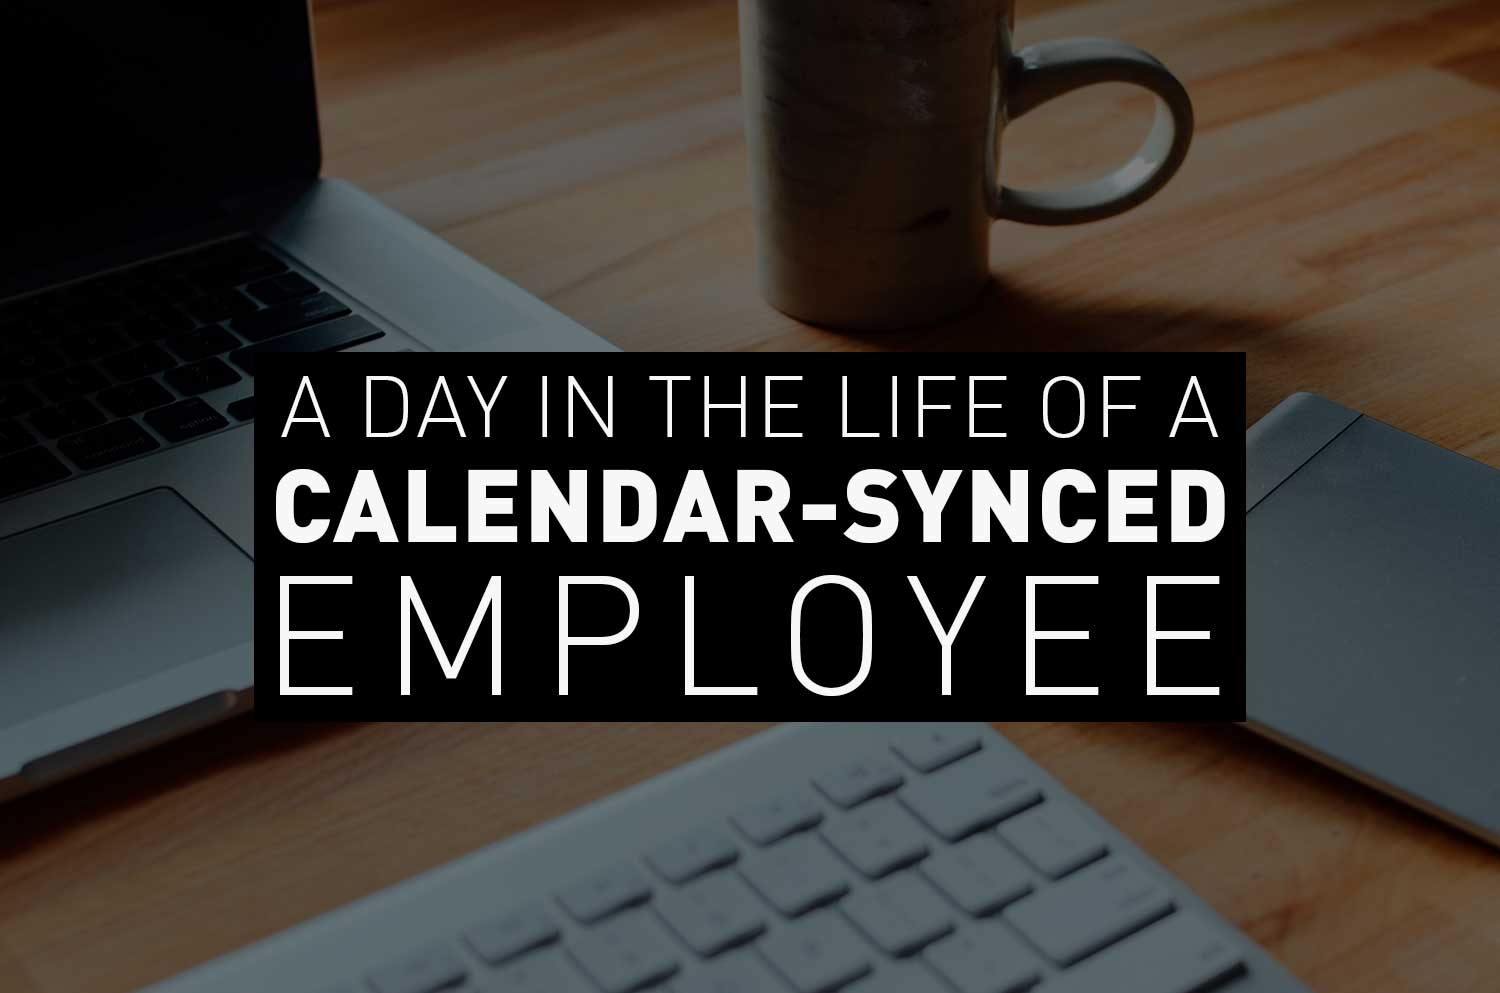 Discover how calendar connectivity can save your employees time every day